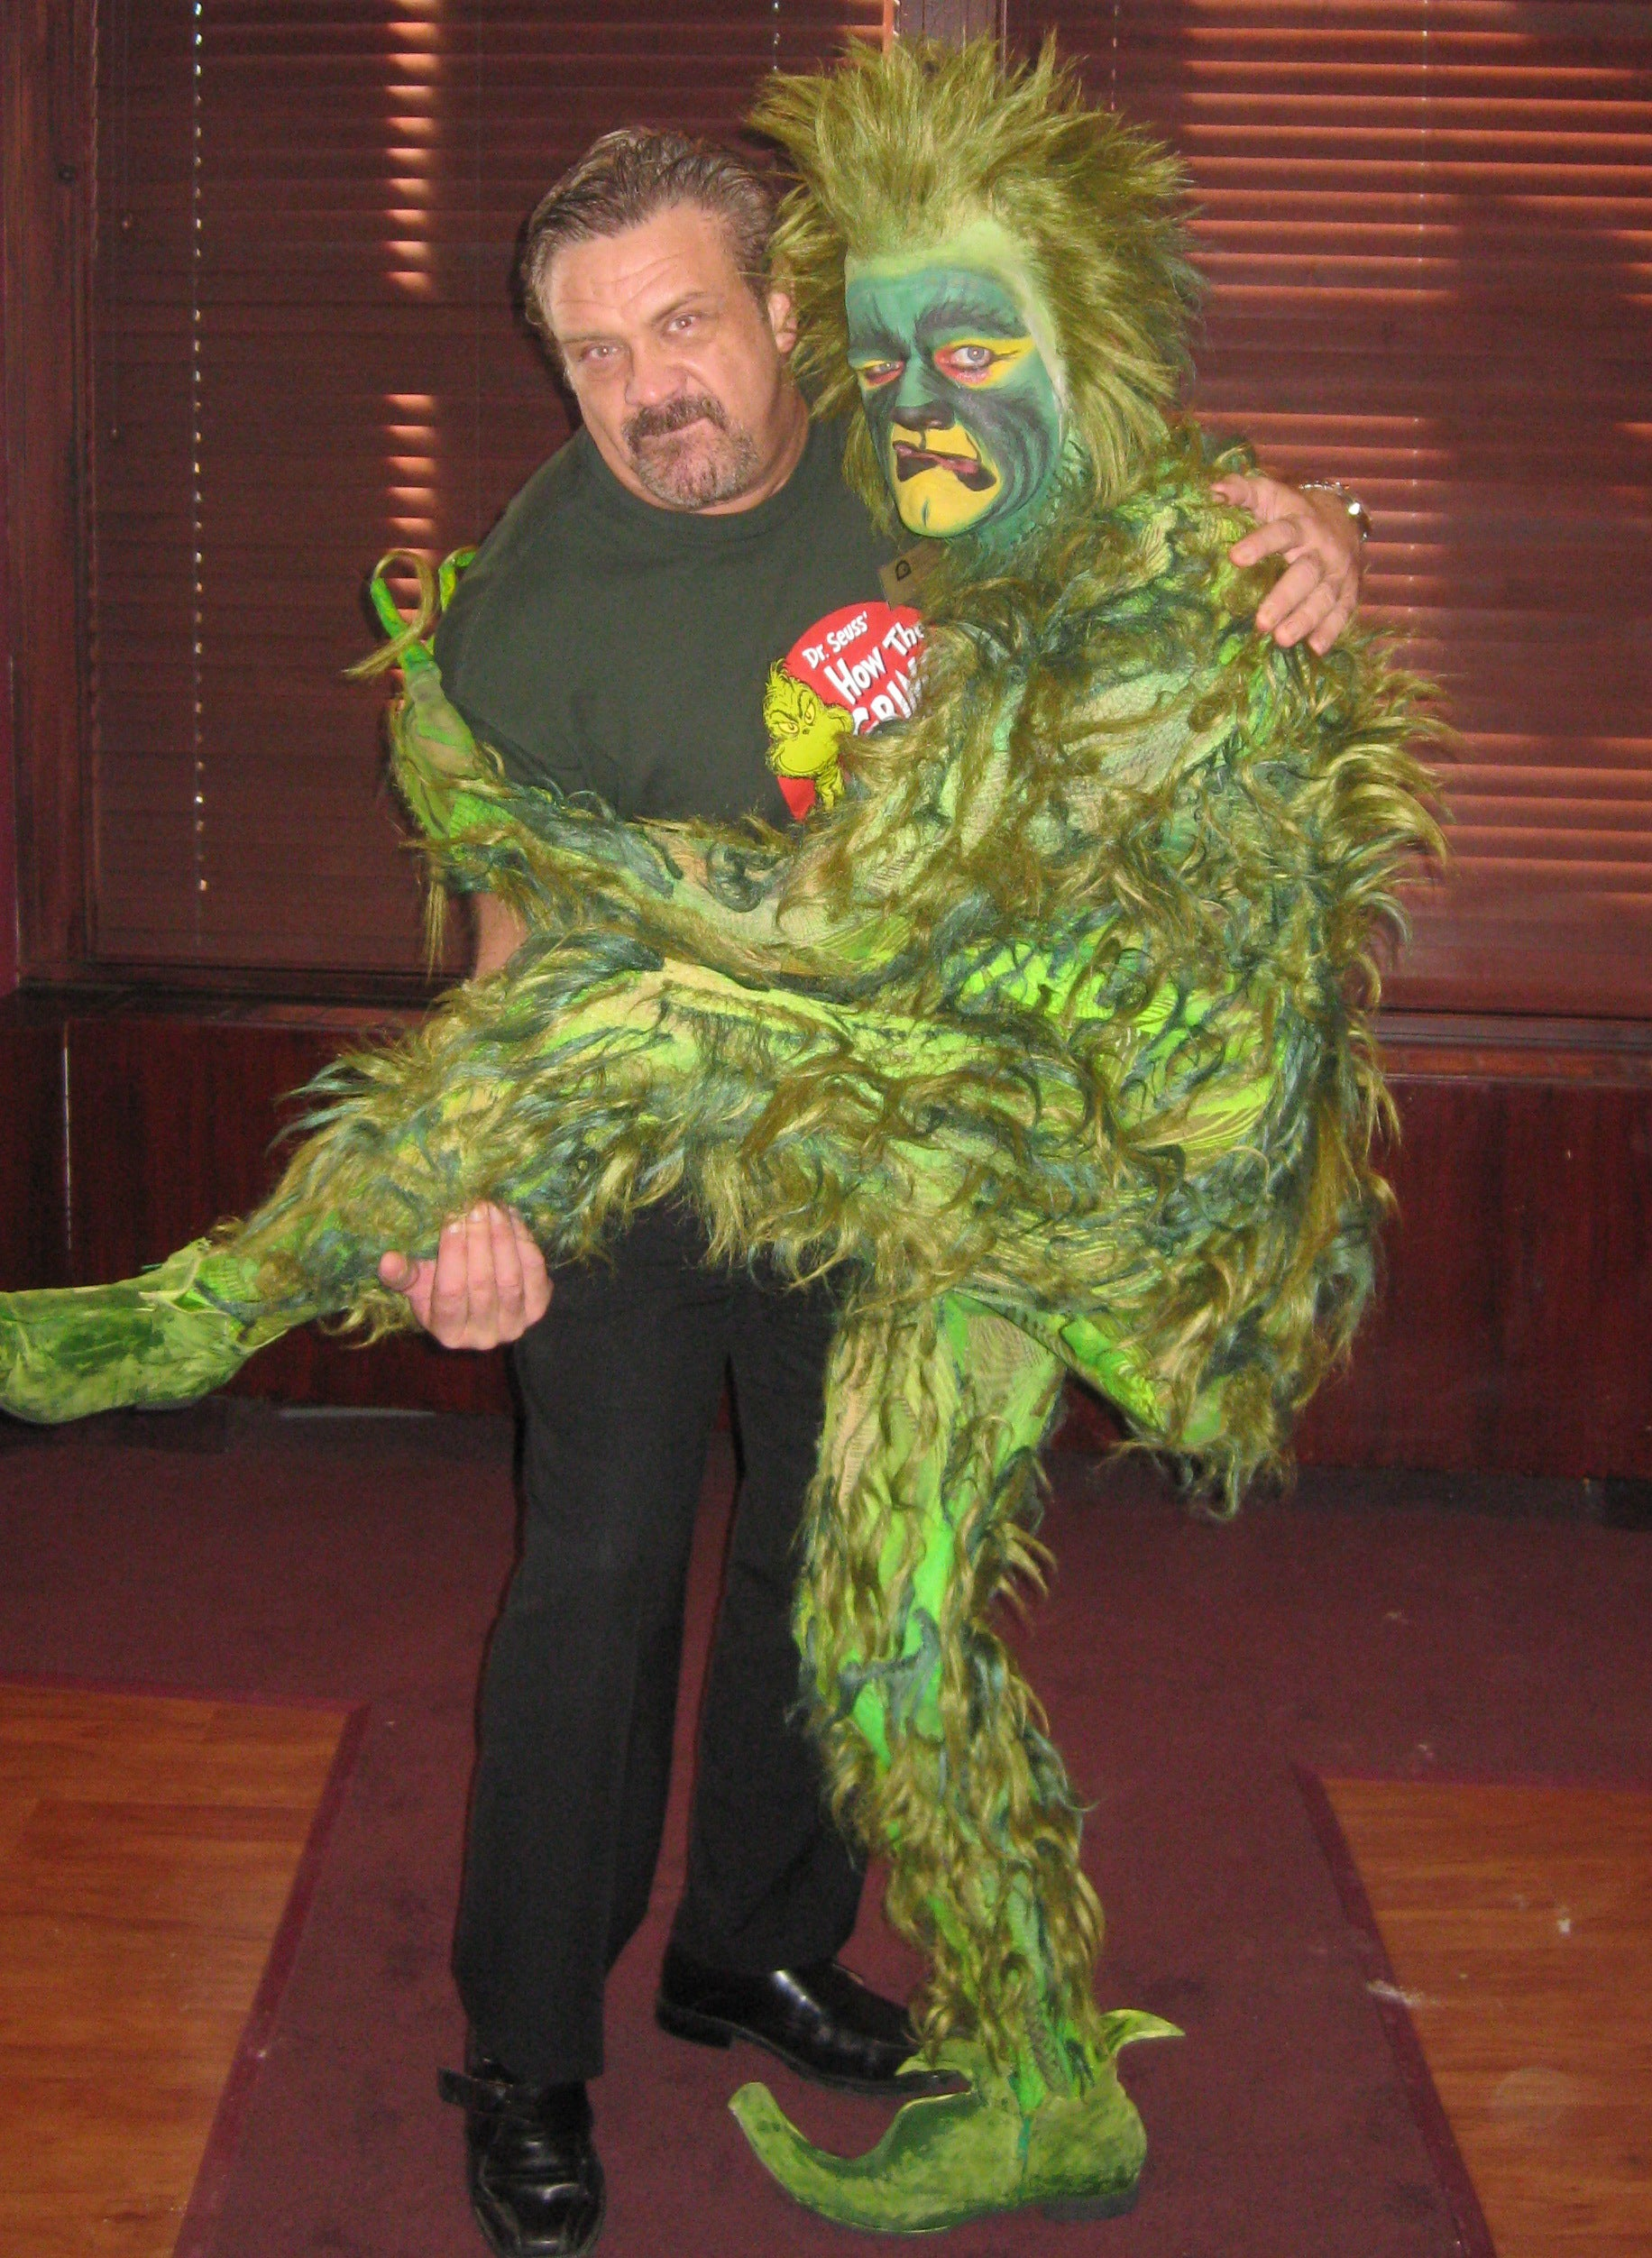 The Grinch Who Stole Christmas Dog.Dr Seuss How The Grinch Stole Christmas The Musical